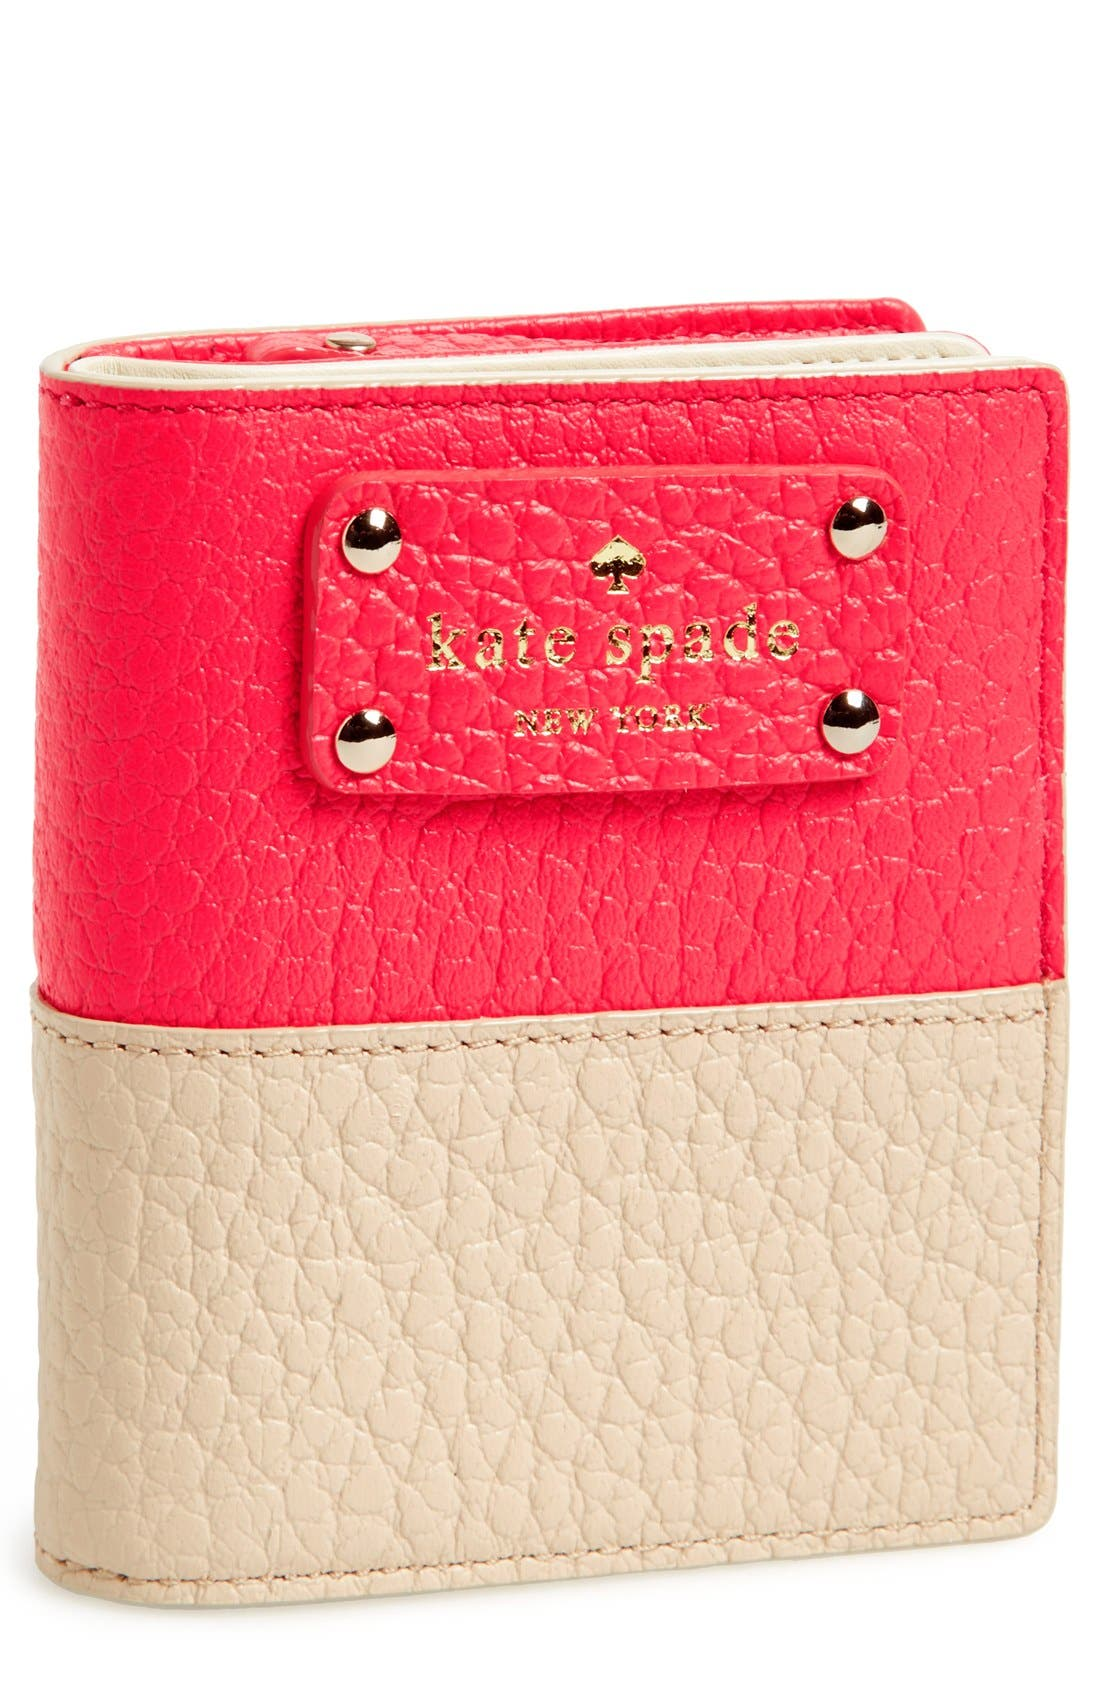 Alternate Image 1 Selected - kate spade new york 'grove court - buttercup' leather wallet